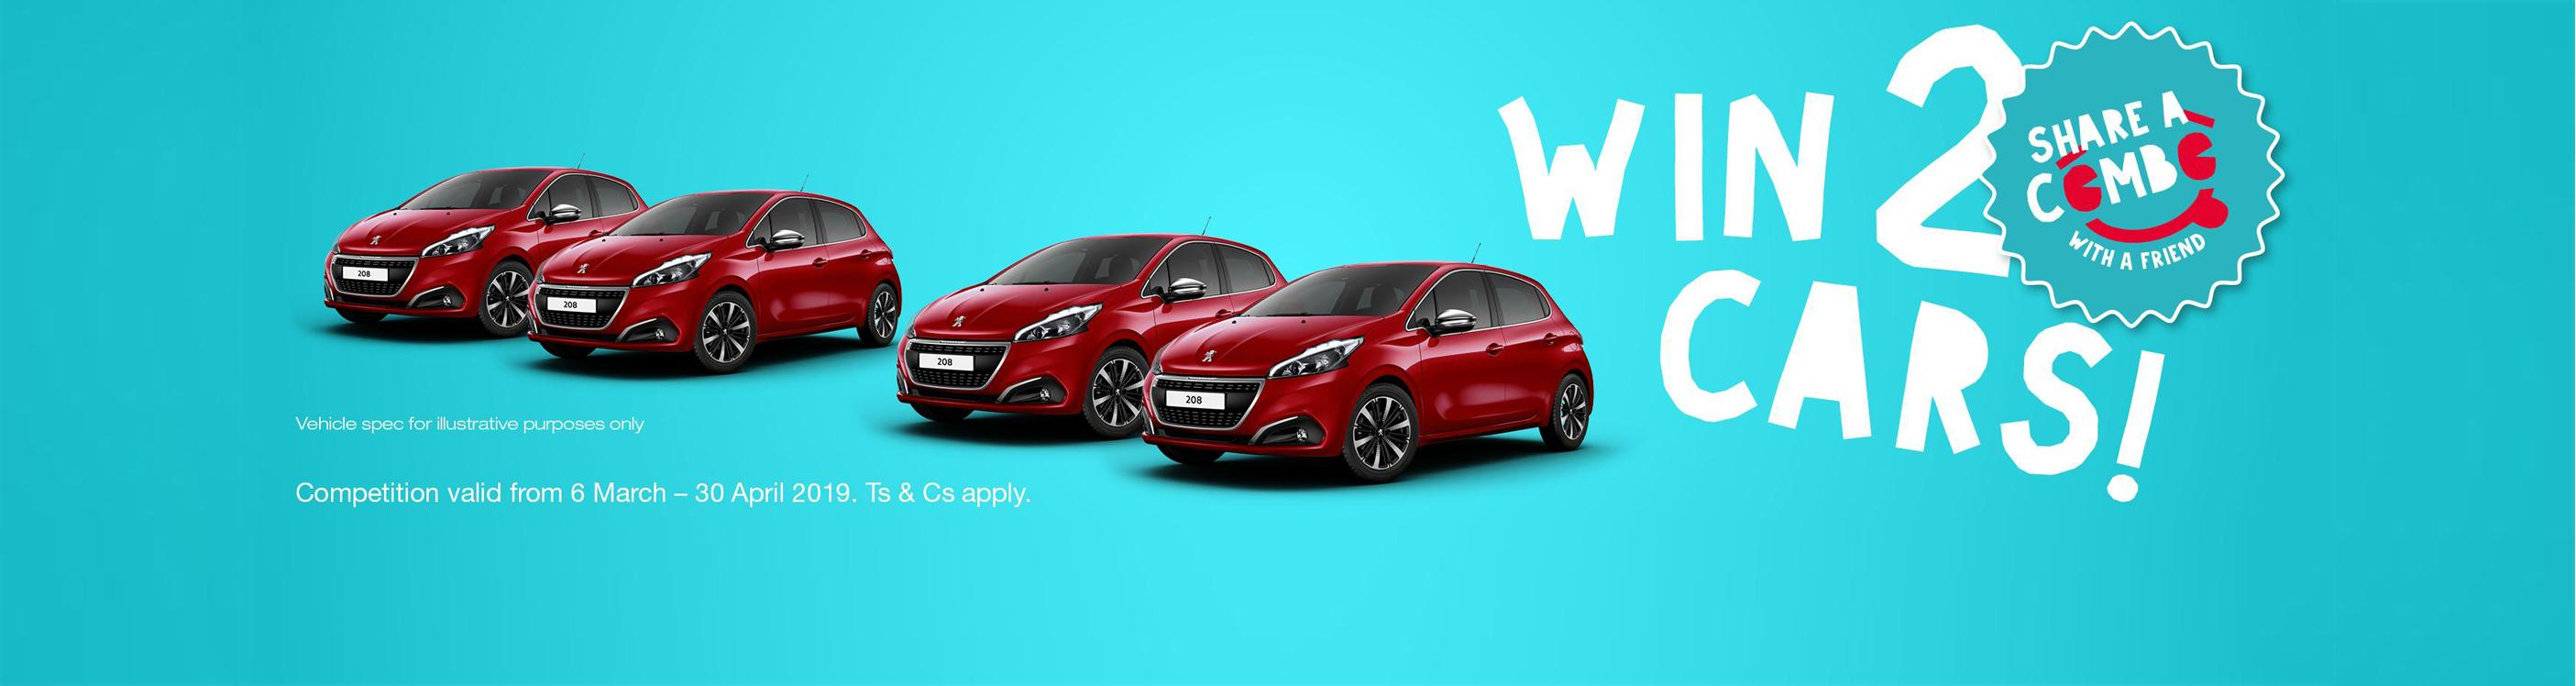 Win 2 cars | Total South Africa